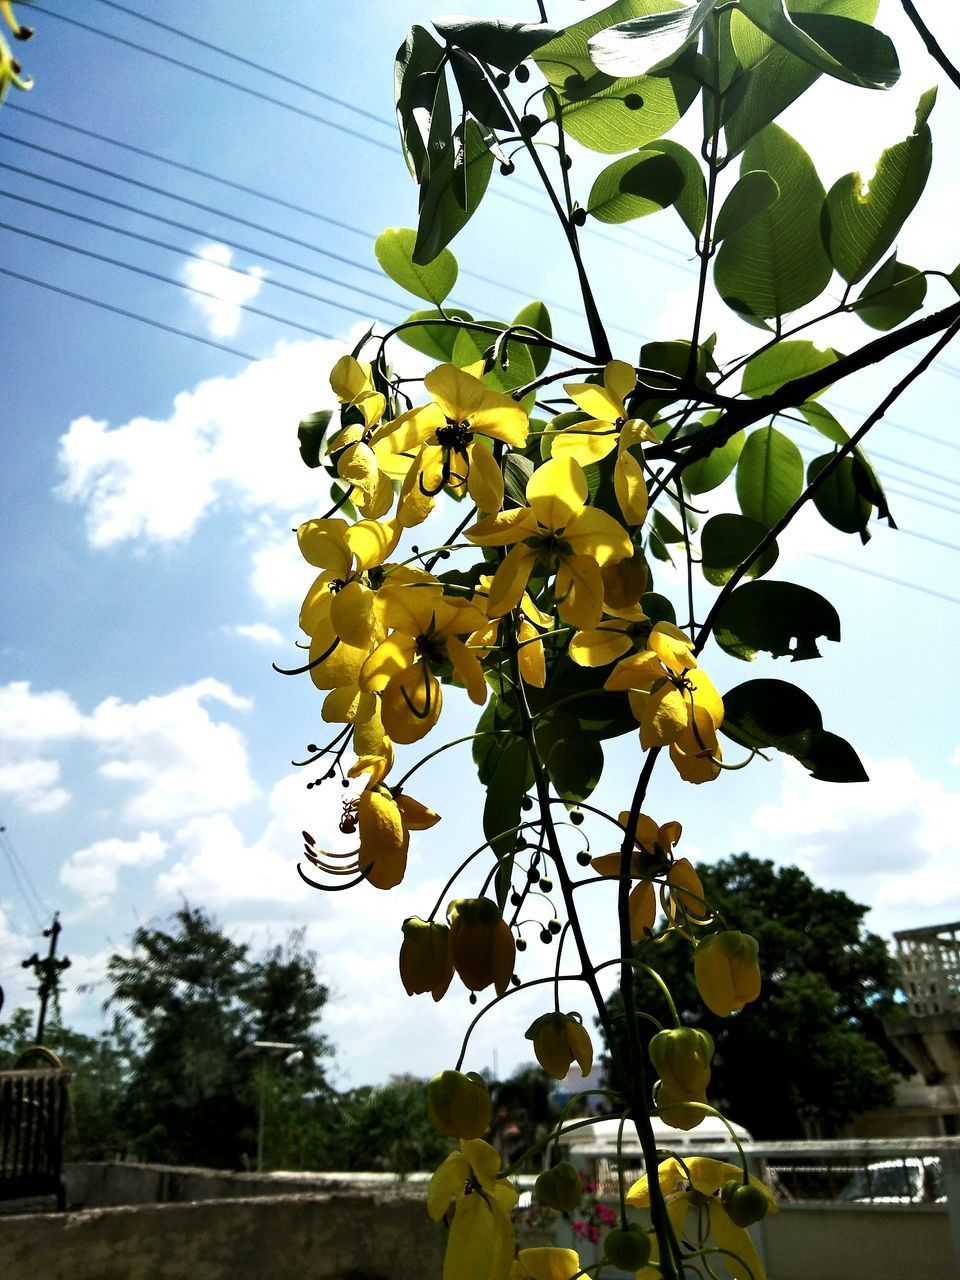 LOW ANGLE VIEW OF YELLOW FLOWERS AGAINST SKY